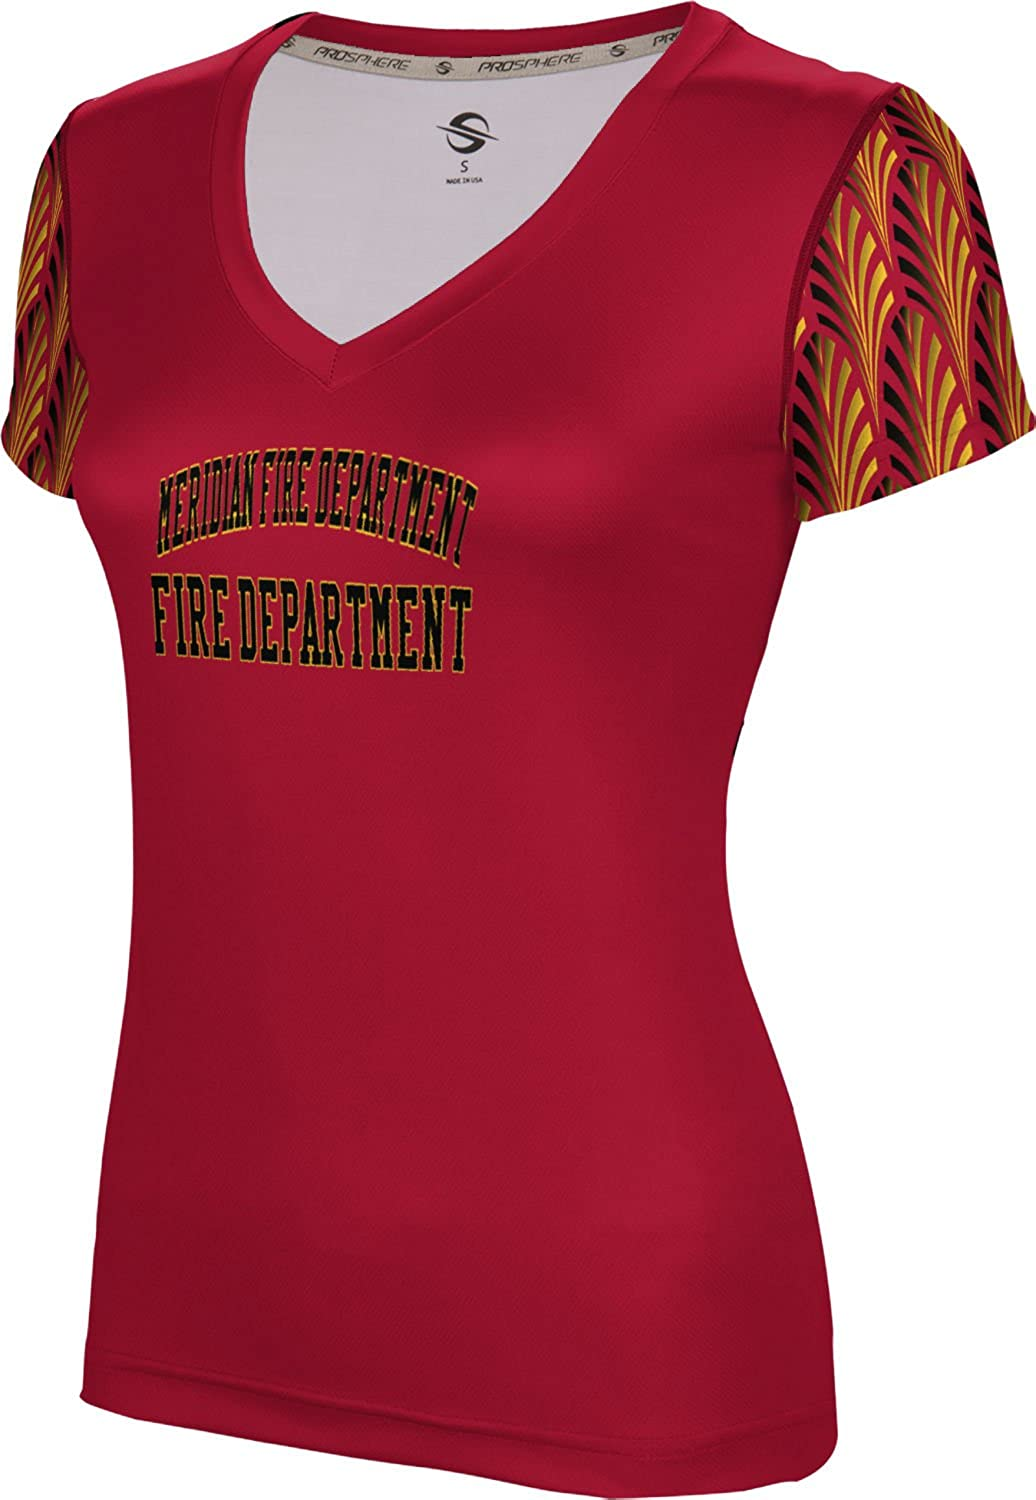 ProSphere Women's Meridian Fire Department Deco SL V-Neck Training Tee